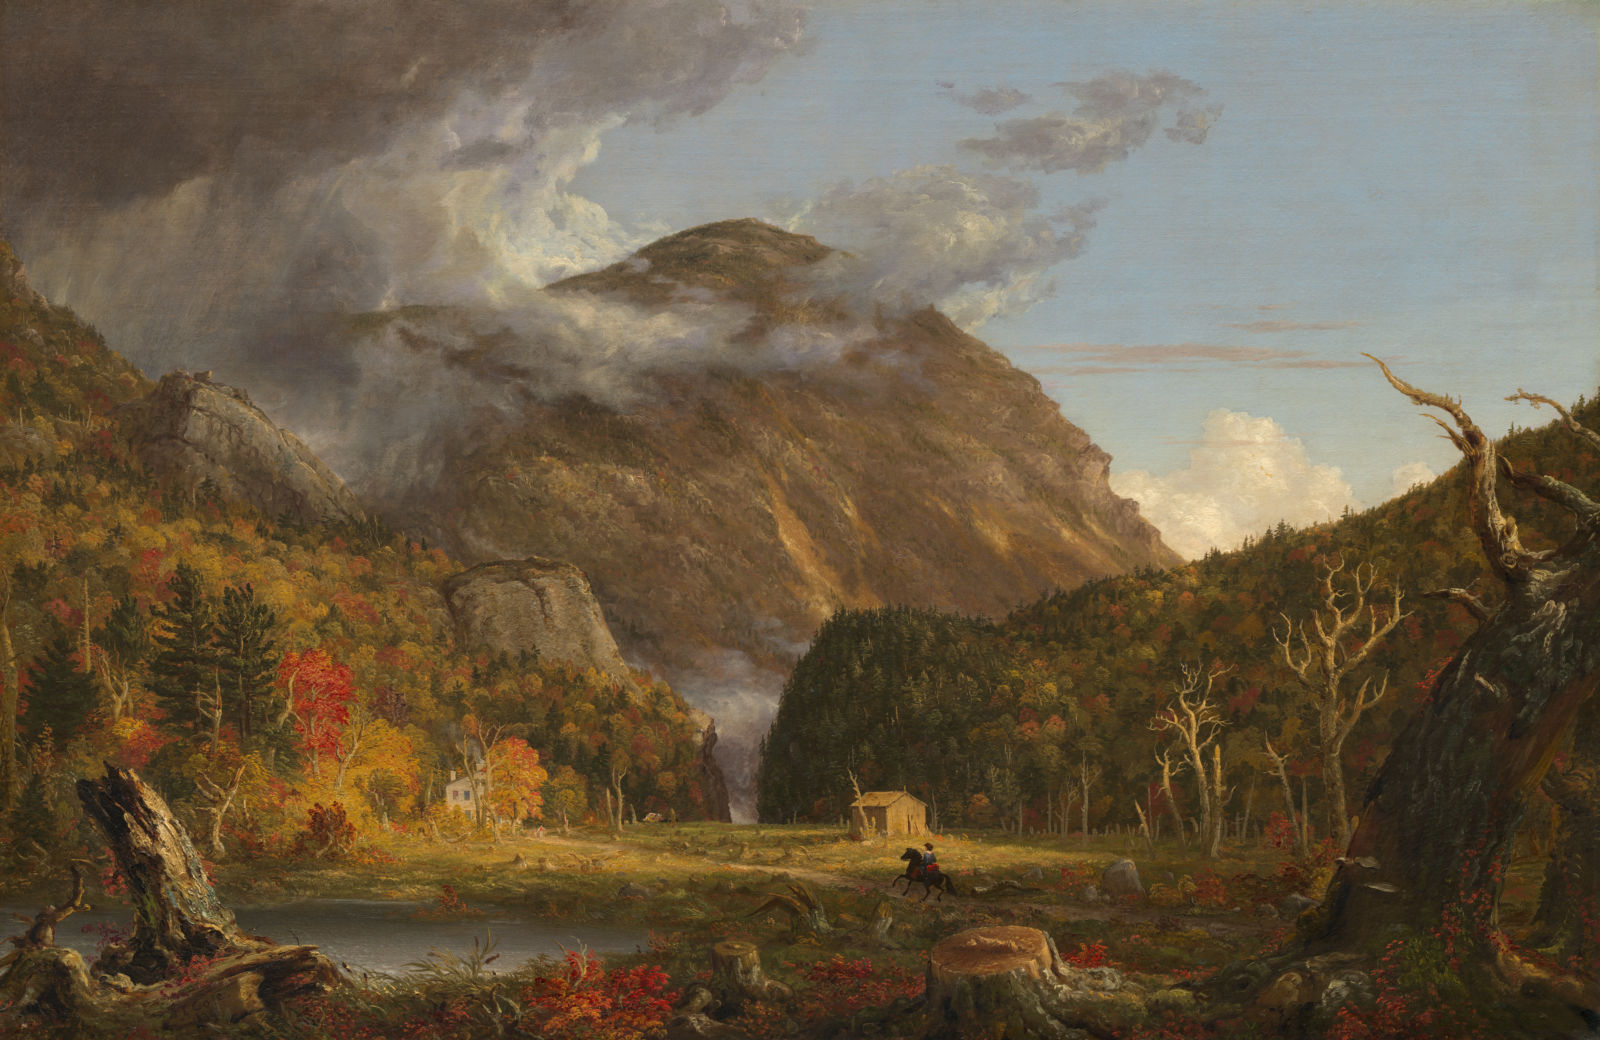 Landscape painting by Thomas Cole